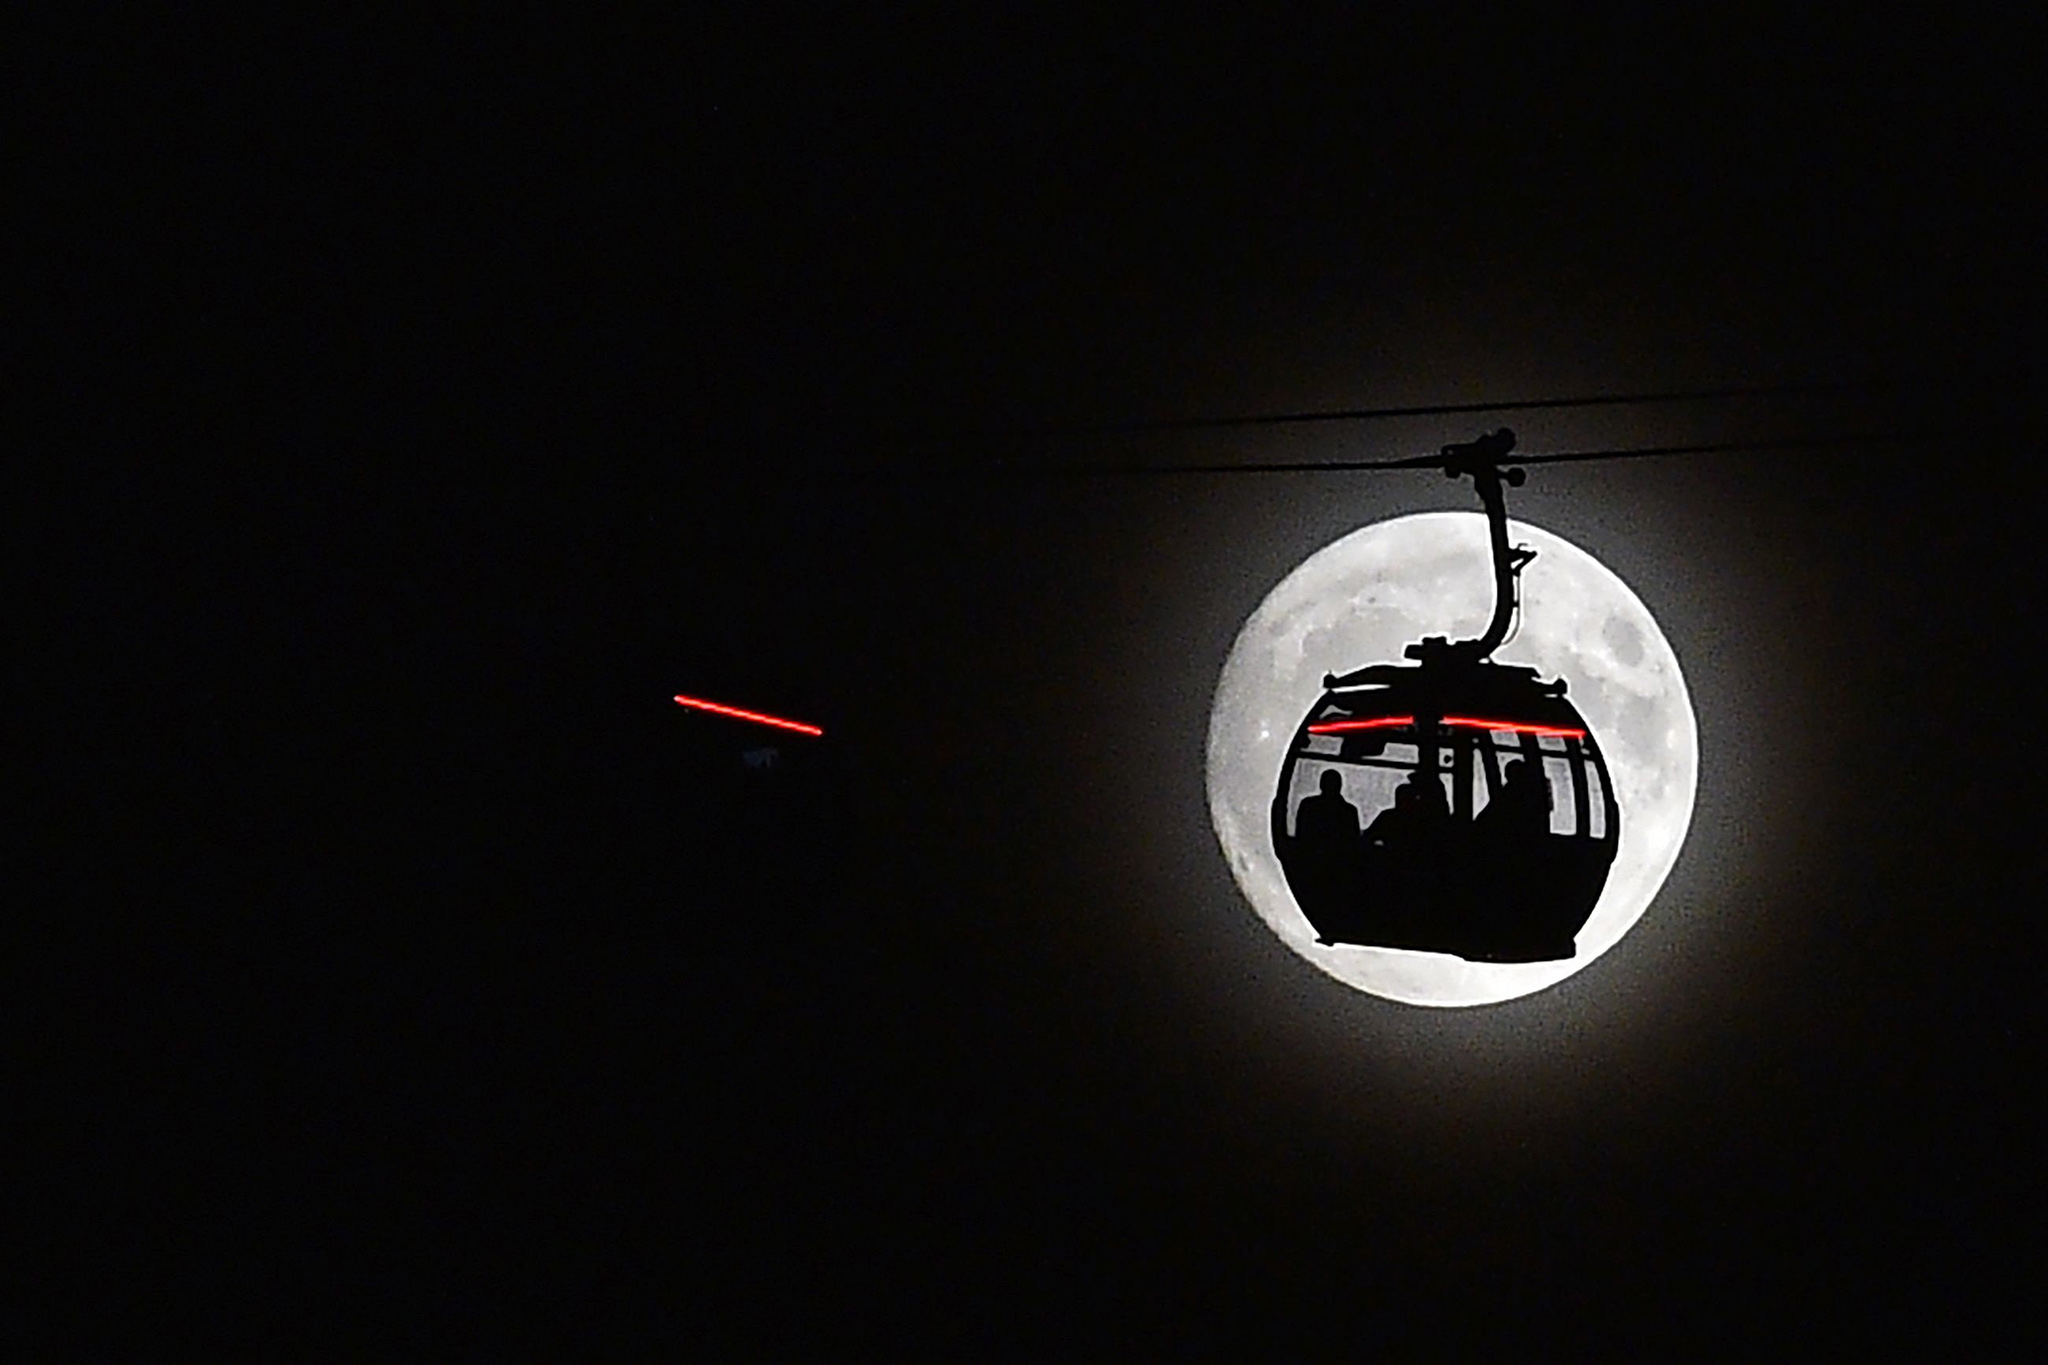 The moon rises behind a car on the The Emirates Air Line (cable car) in London's Docklands on November 13, 2016. Tomorrow, the moon will orbit closer to the earth than at any time since 1948, named a 'supermoon', it is defined by a Full or New moon coinciding with the moon's closest approach to the Earth. / AFP PHOTO / Glyn KIRKGLYN KIRK/AFP/Getty Images